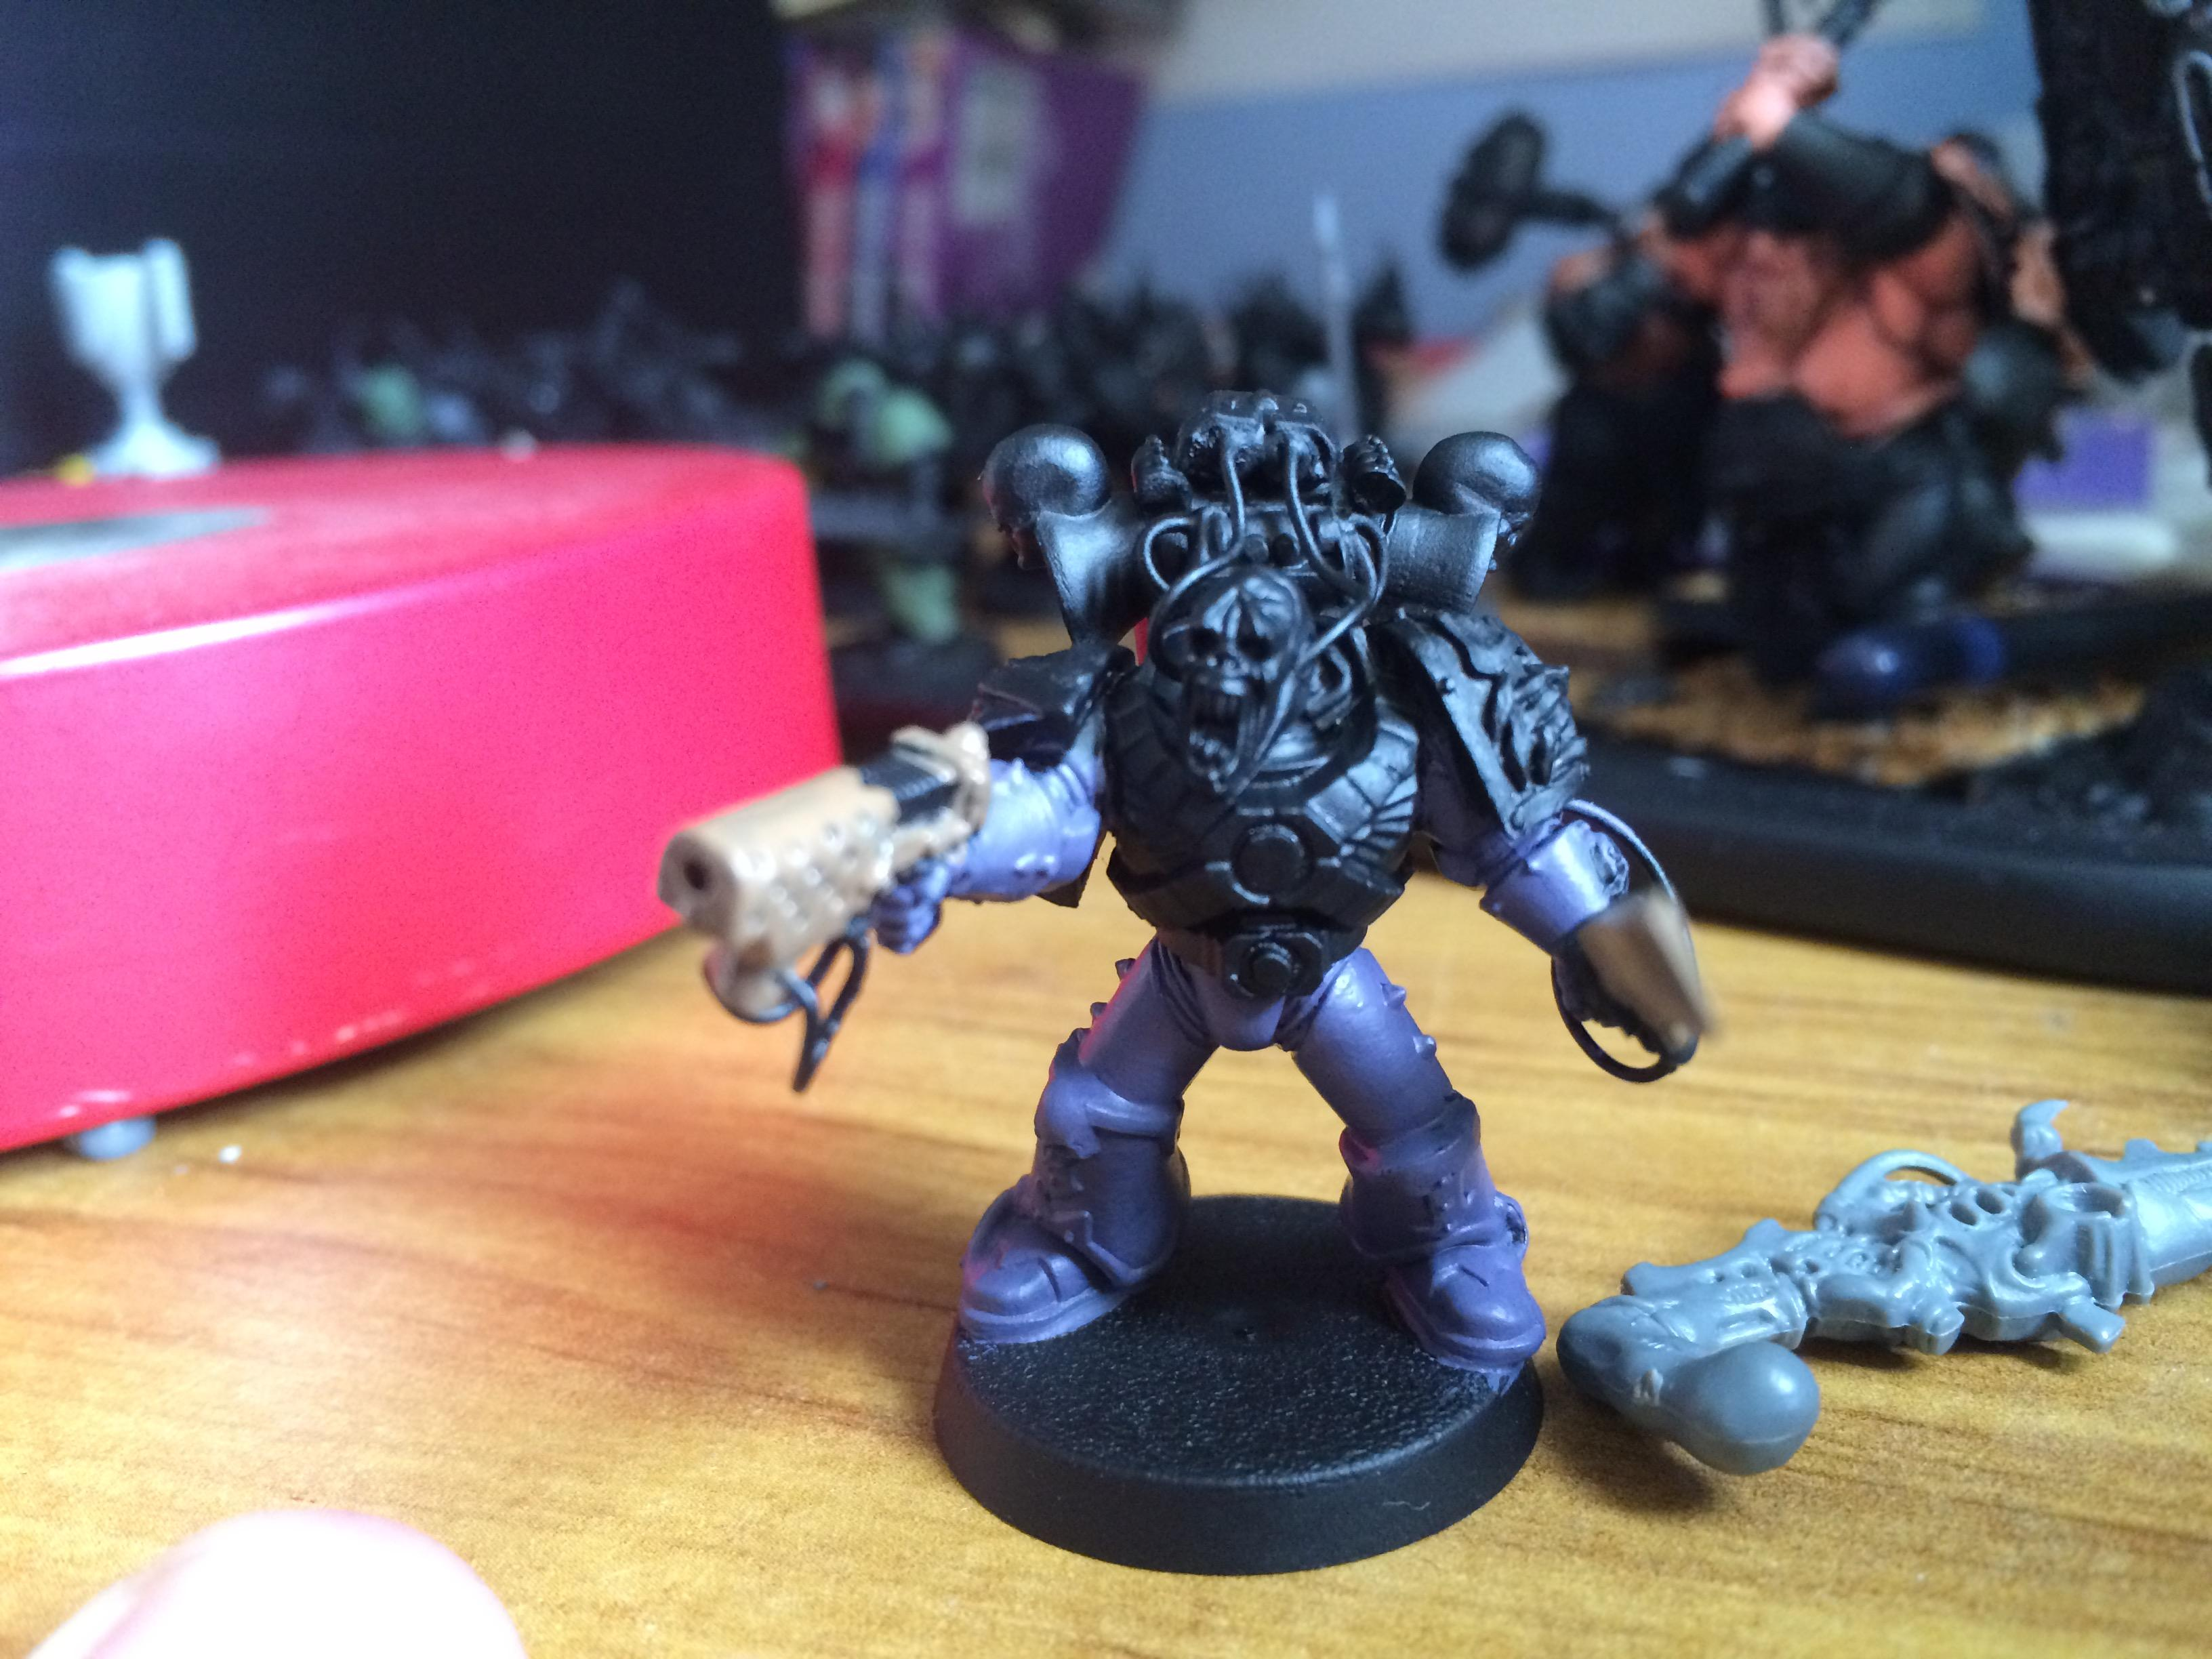 Chaos, Chaos Space Marines, Children, Conversion, Emperor, Emperor's, Emperor's Children, Fulgrim, Games, Games Workshop, Hormagaunt Purple, Kitbash, Modification, Noise, Noise Marines, Painting, Pink, Prime, Primered, Slaanesh, Sonic, Space, Space Marines, Workshop